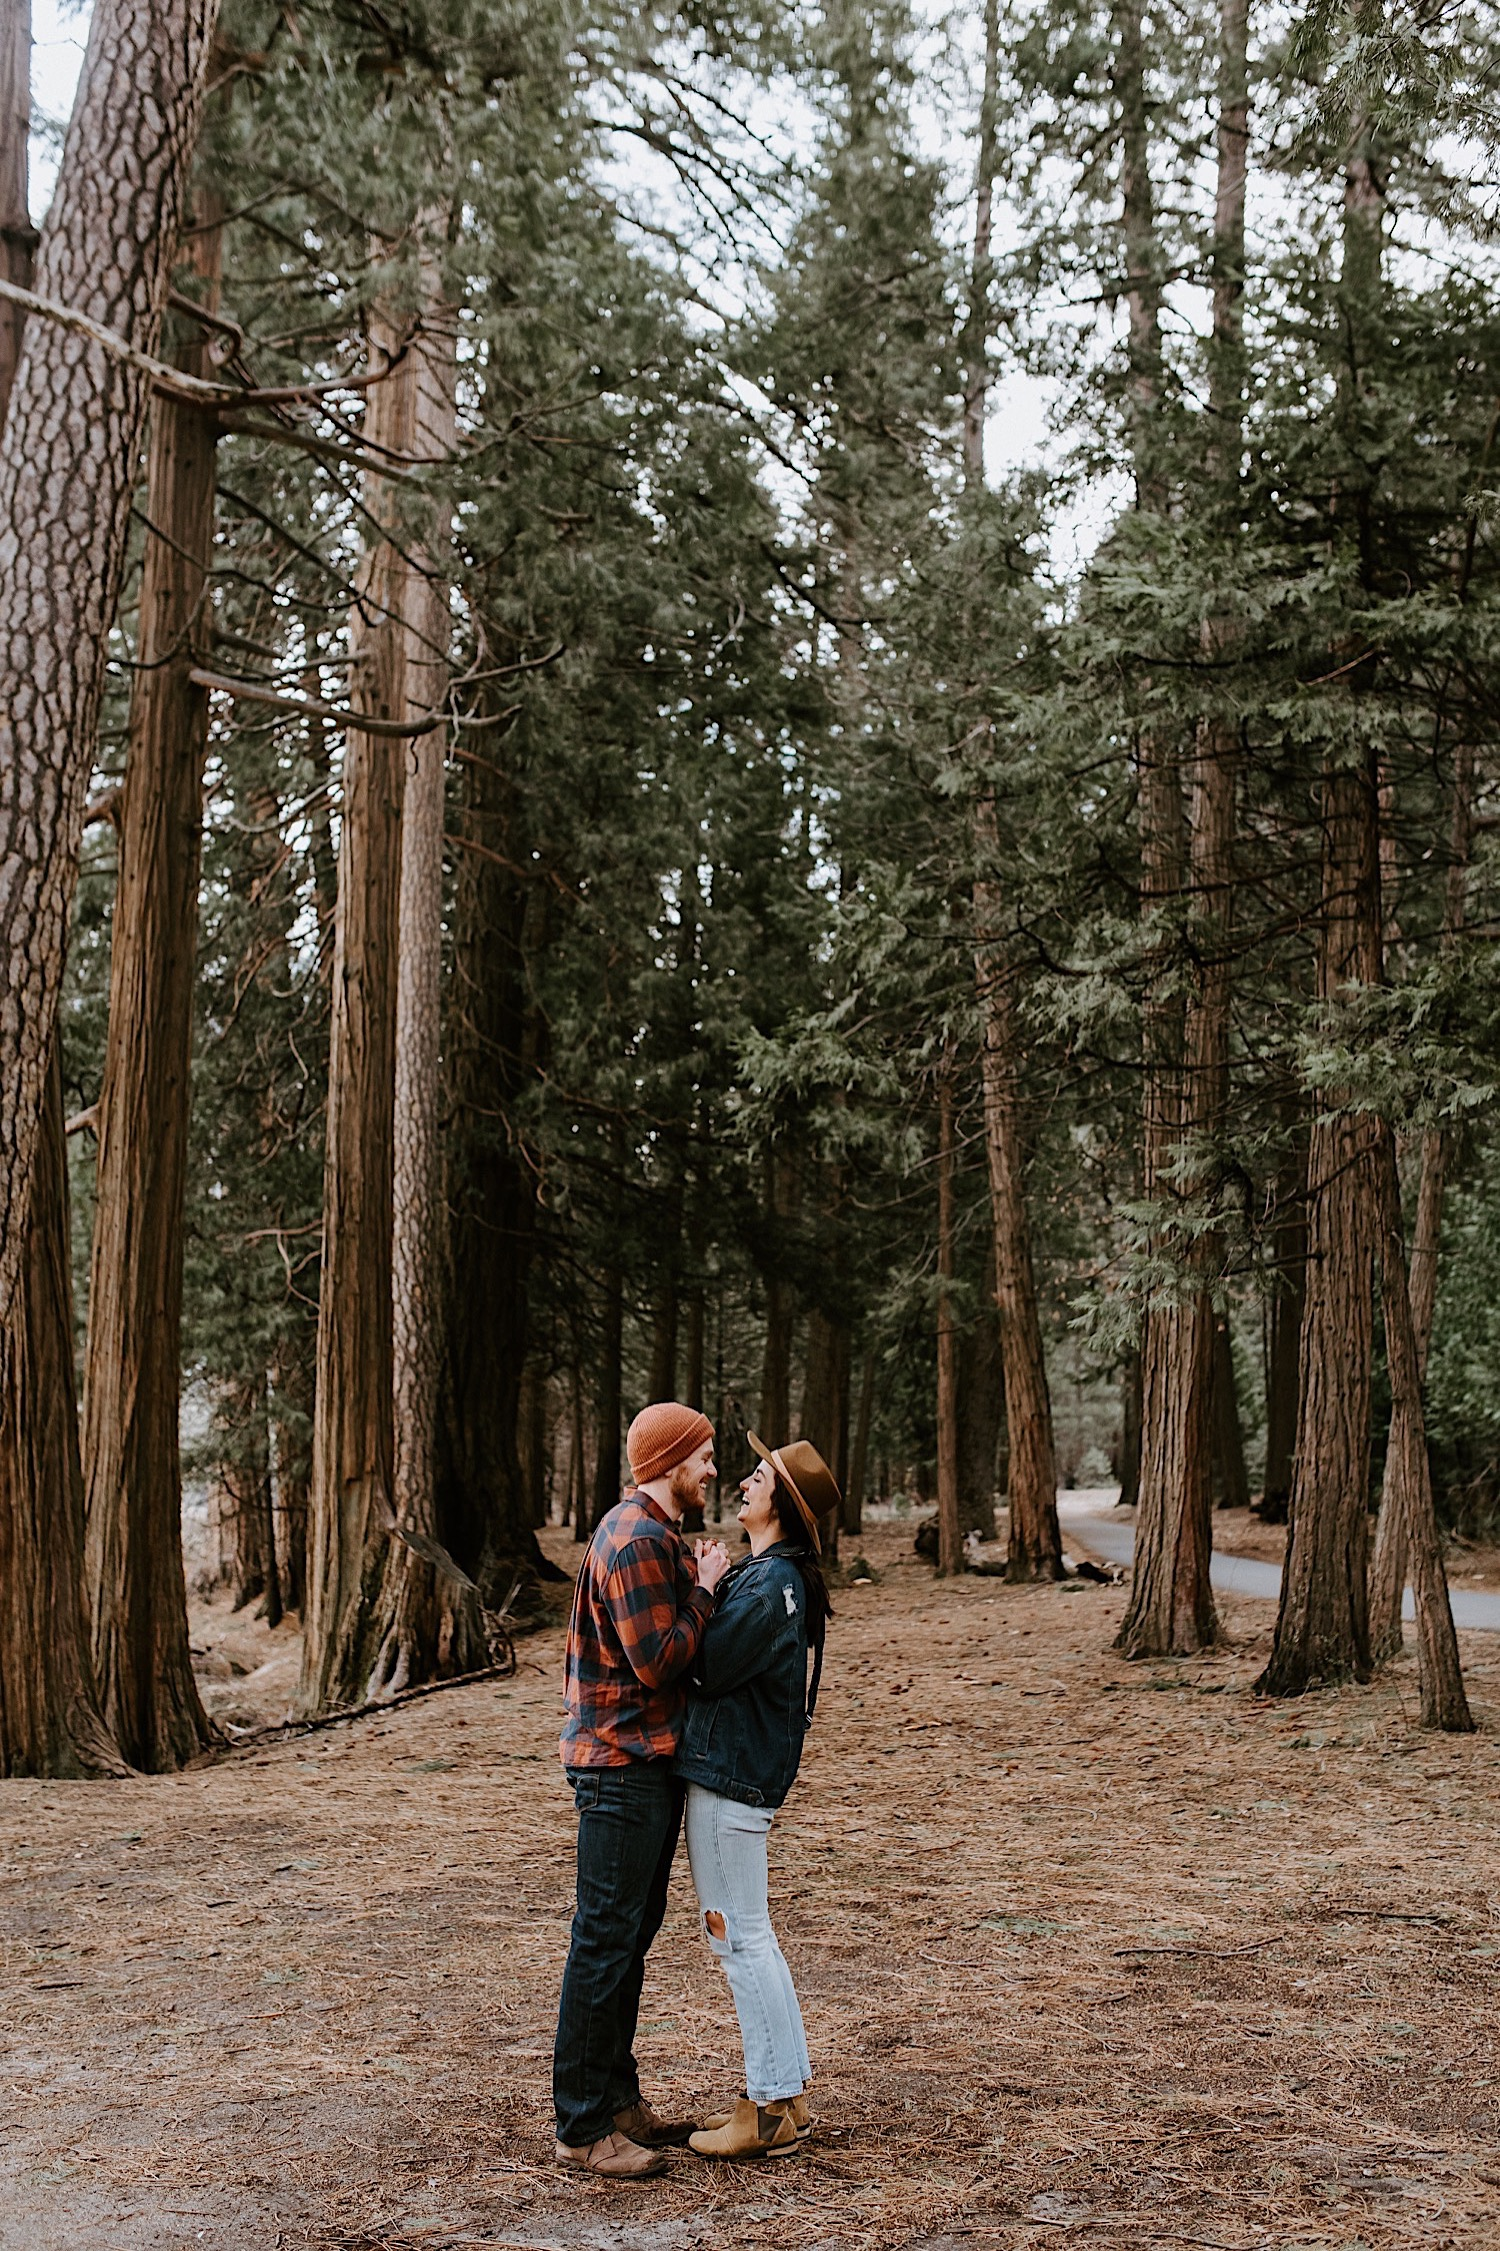 Yosemite Anniversary California Wedding Photographer San Francisco Wedding Photographer Yosemite Elopement 26